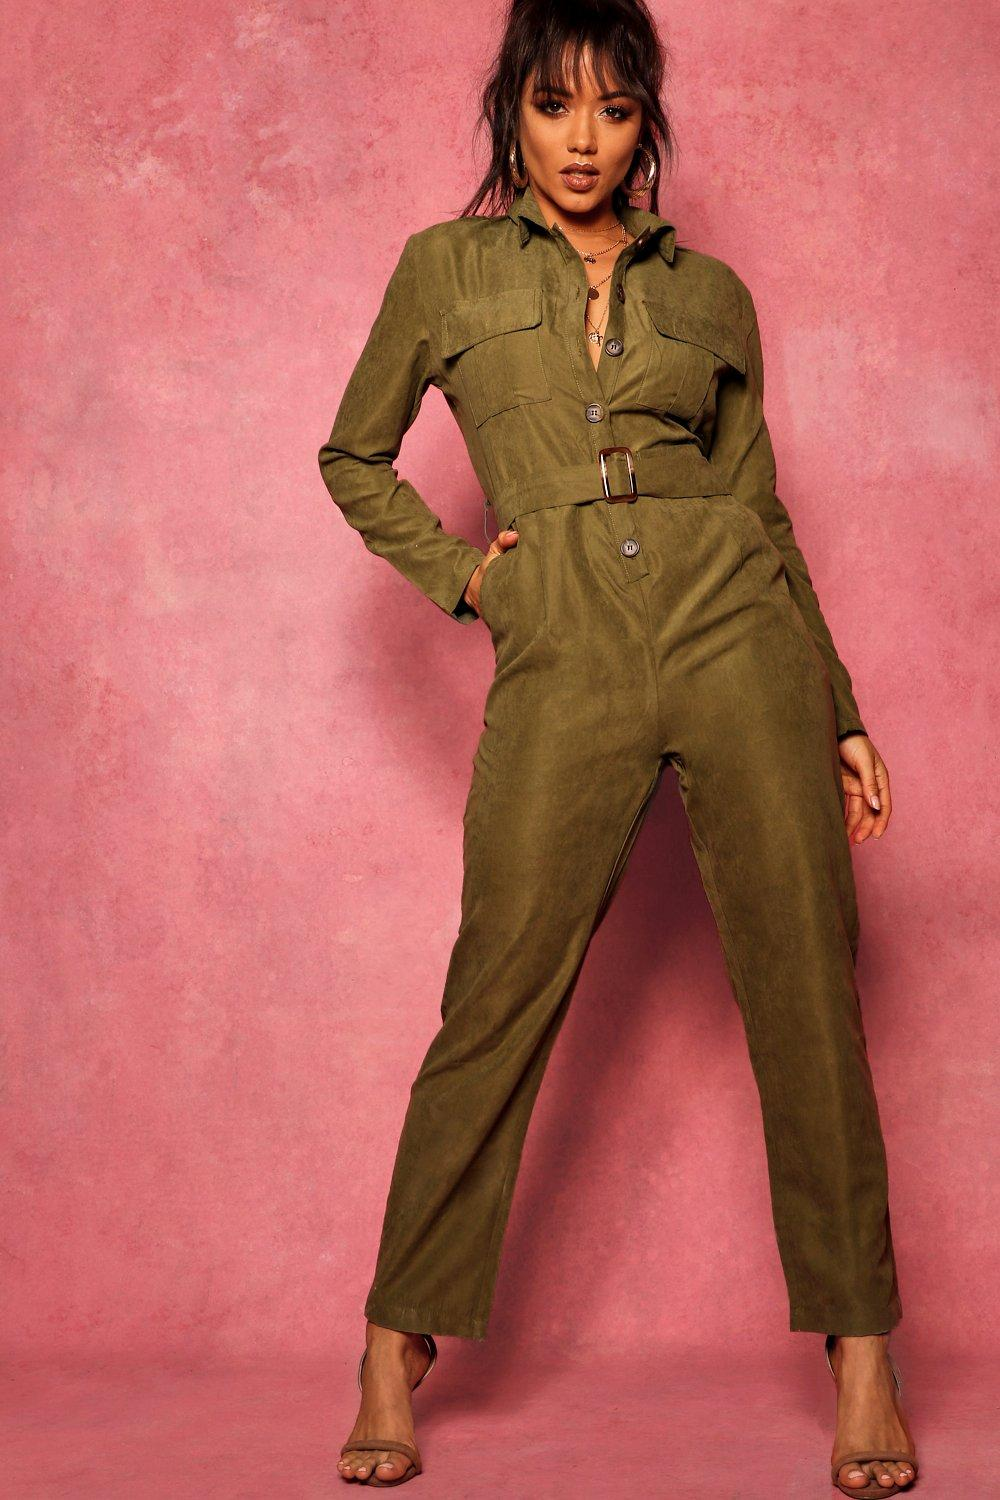 70s Jumpsuit | Disco Jumpsuits, Sequin Rompers Womens Suedette Utility Cargo Belted Jumpsuit - green - 16 $20.00 AT vintagedancer.com